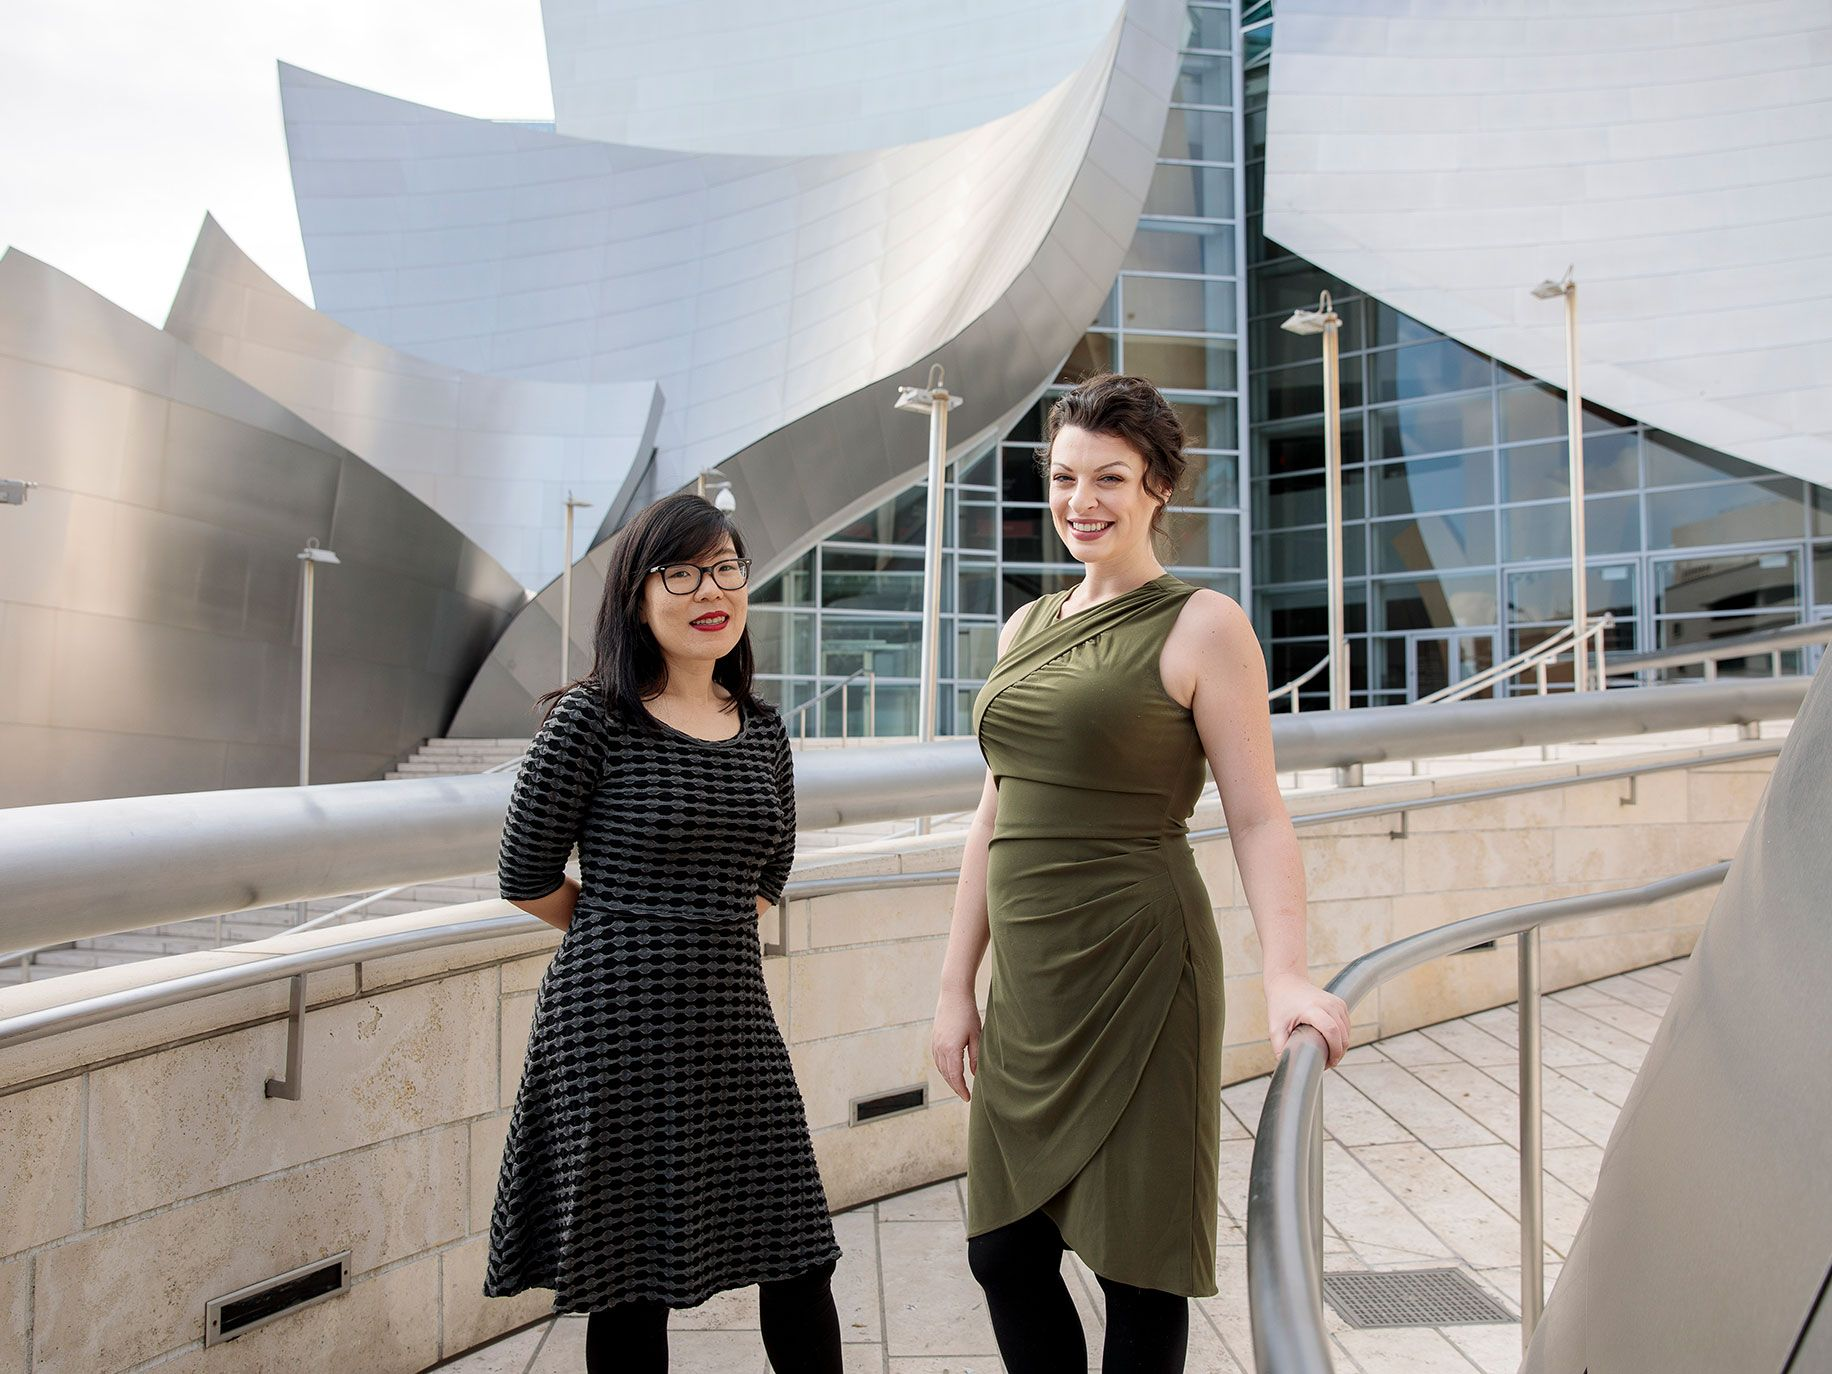 L.A.-based composers Carolyn Chen, left, and Julia Adolphe outside the Walt Disney Concert Hall. Both of their works were performed by the Los Angeles Philharmonic as part of its 100th-anniversary celebration.